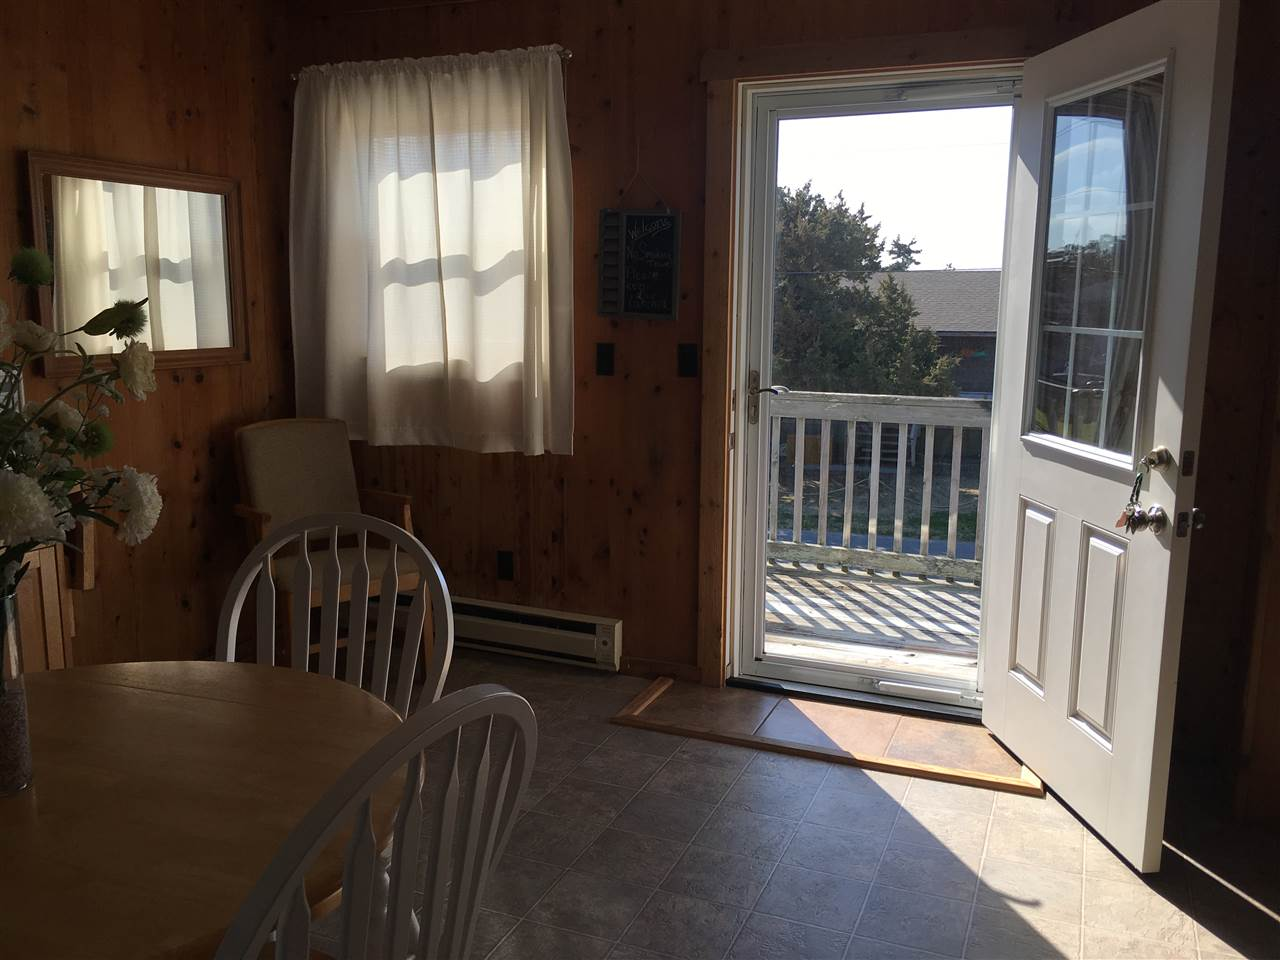 Sand Street, Salvo, NC 27972, 1 Bedroom Bedrooms, ,1 BathroomBathrooms,Residential,For sale,Sand Street,95077